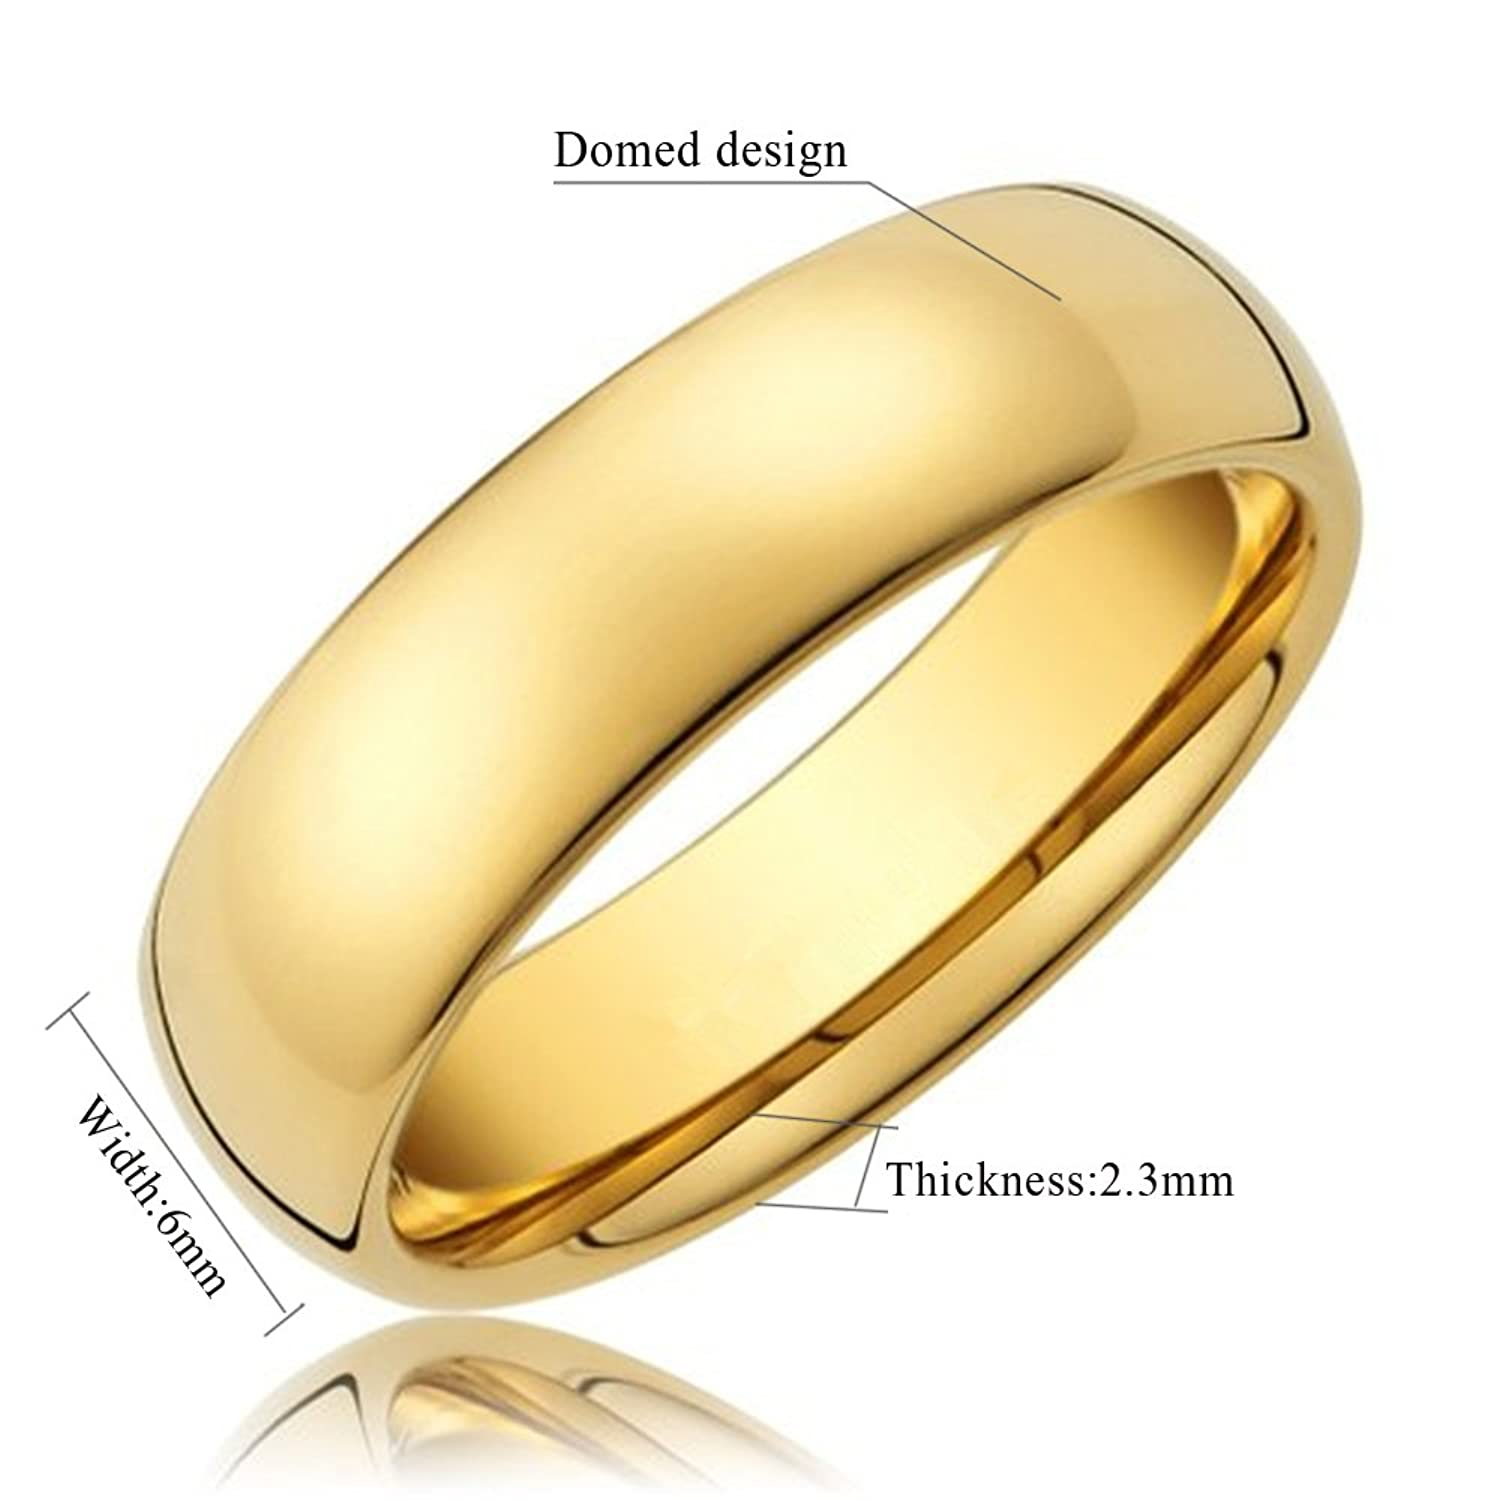 Amazoncom King Will GLORY 6mm 24k Gold Plated High Polished